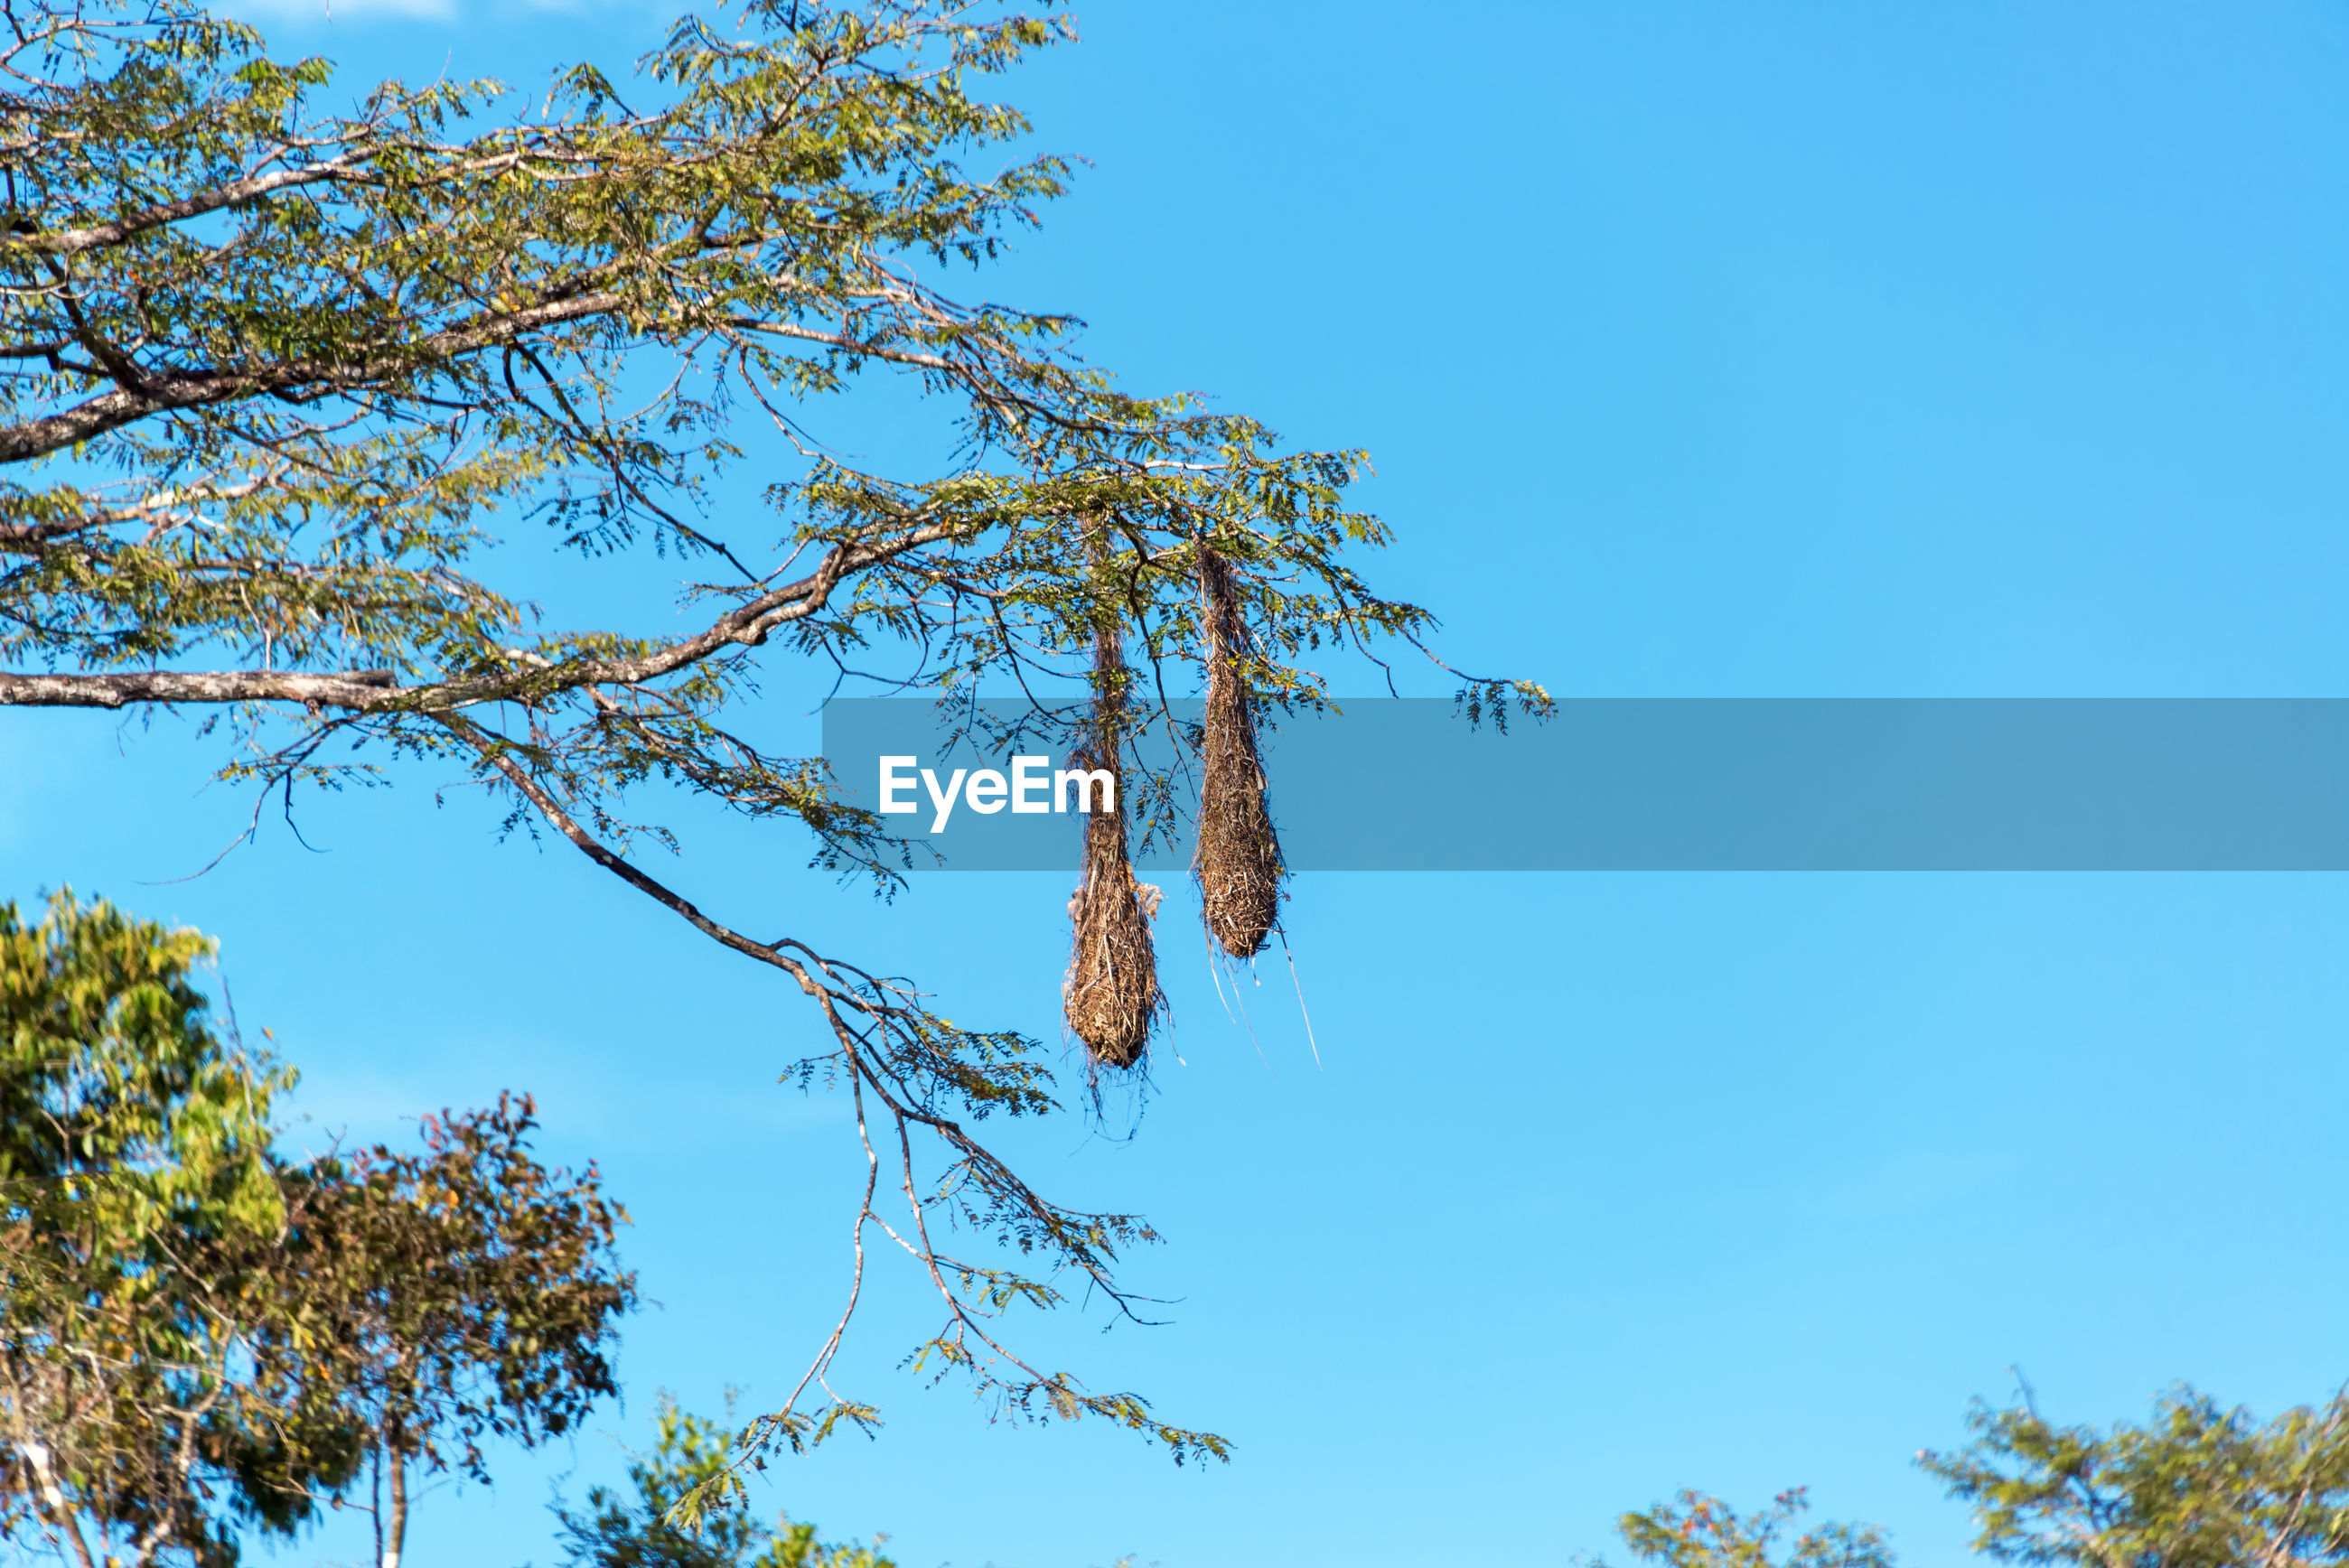 Low angle view of nests hanging on tree against clear blue sky